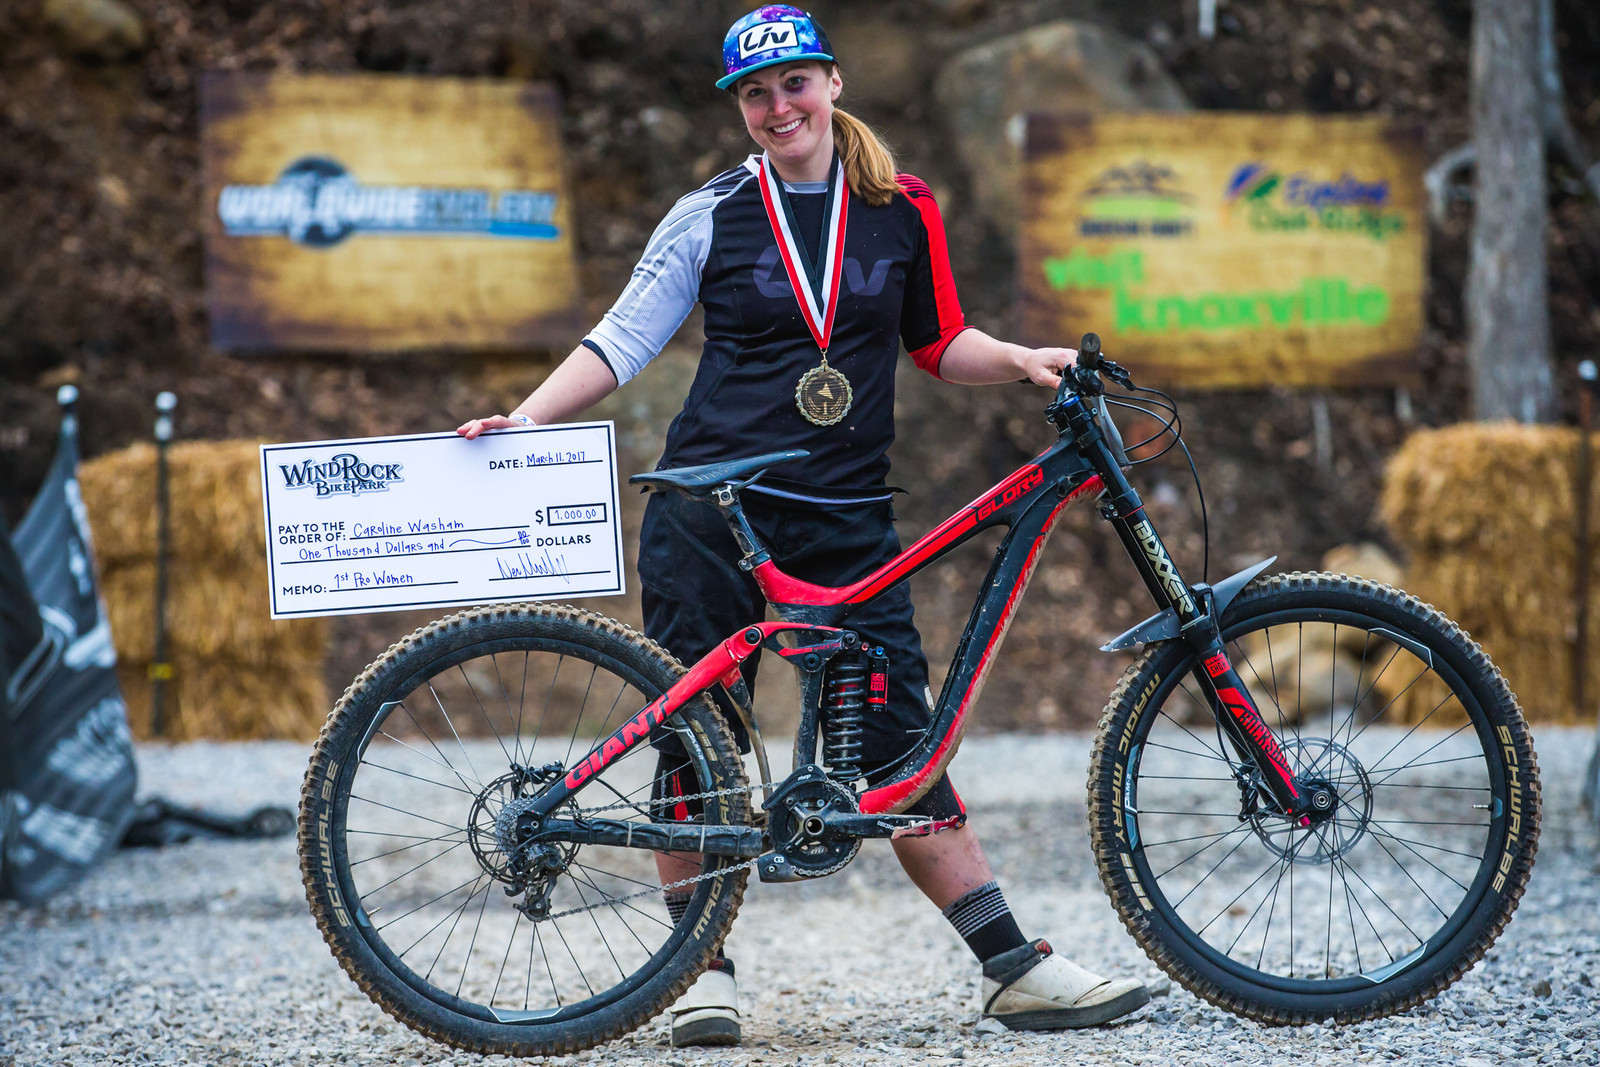 WINNER'S CIRCLE Pro GRT Windrock - Caroline Washam with her Giant Glory Advanced - WINNER'S CIRCLE - Pro GRT Windrock - Mountain Biking Pictures - Vital MTB